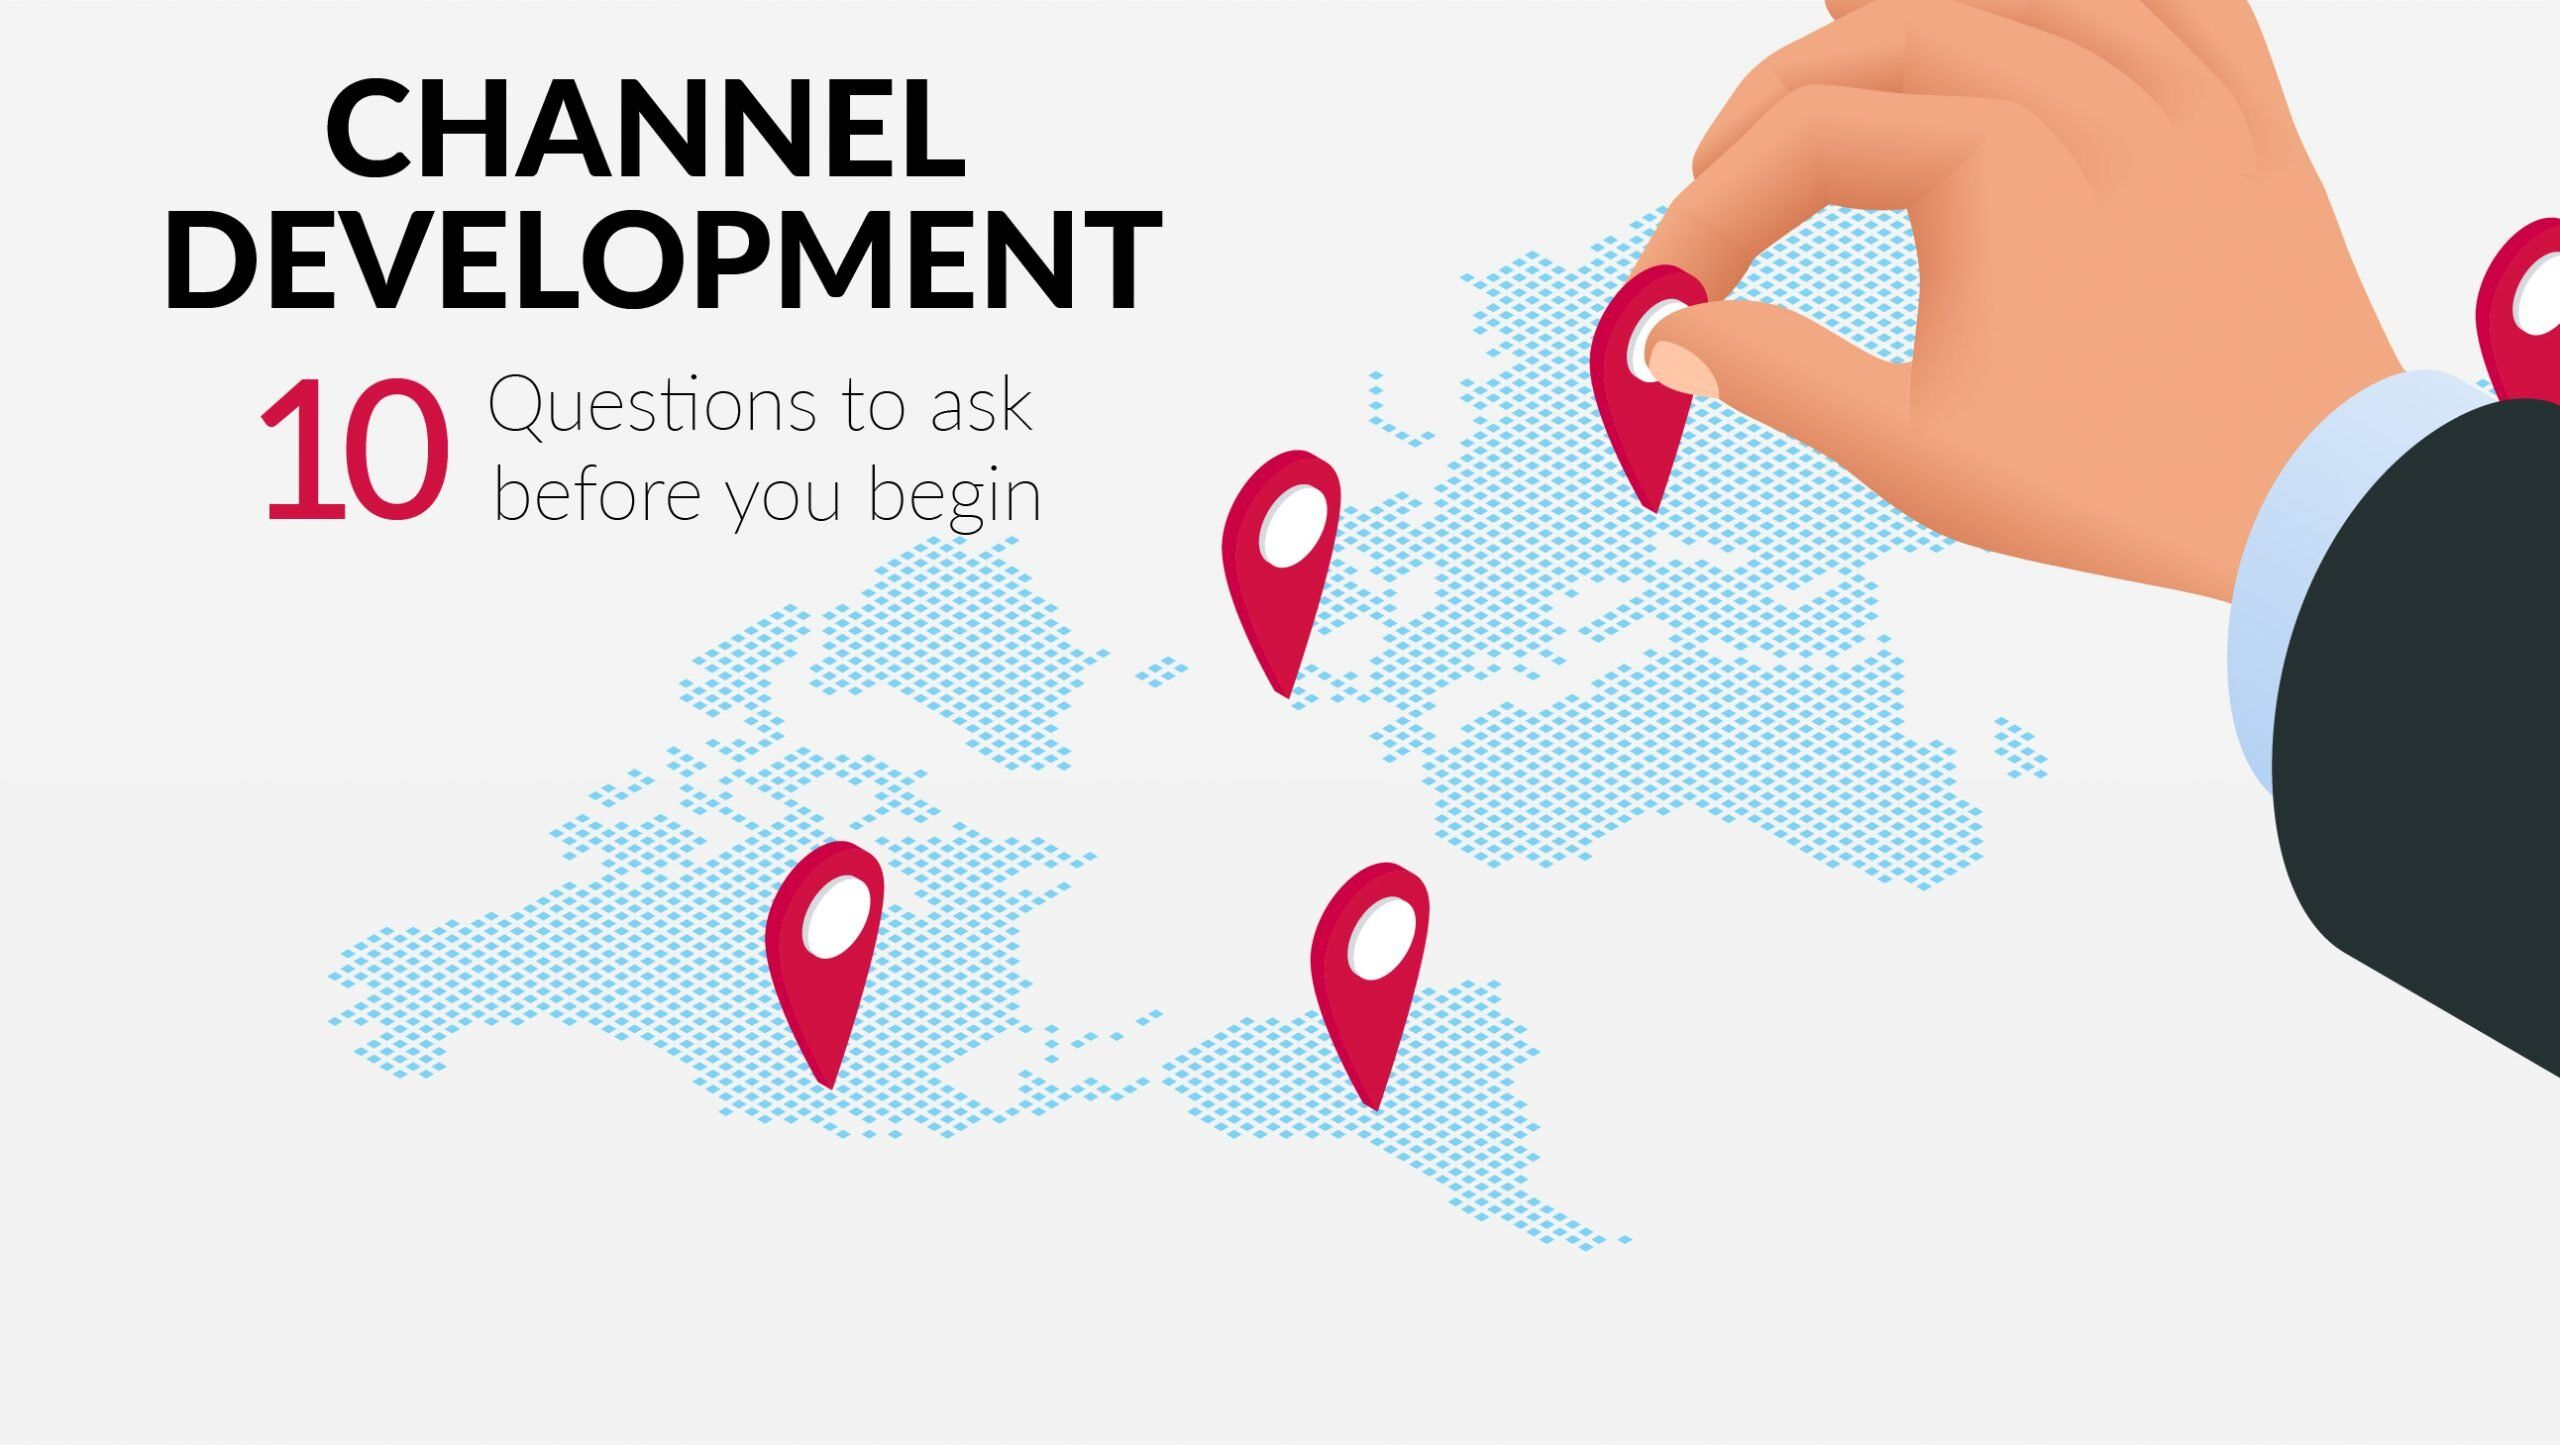 10 questions to ask before beginning Channel development